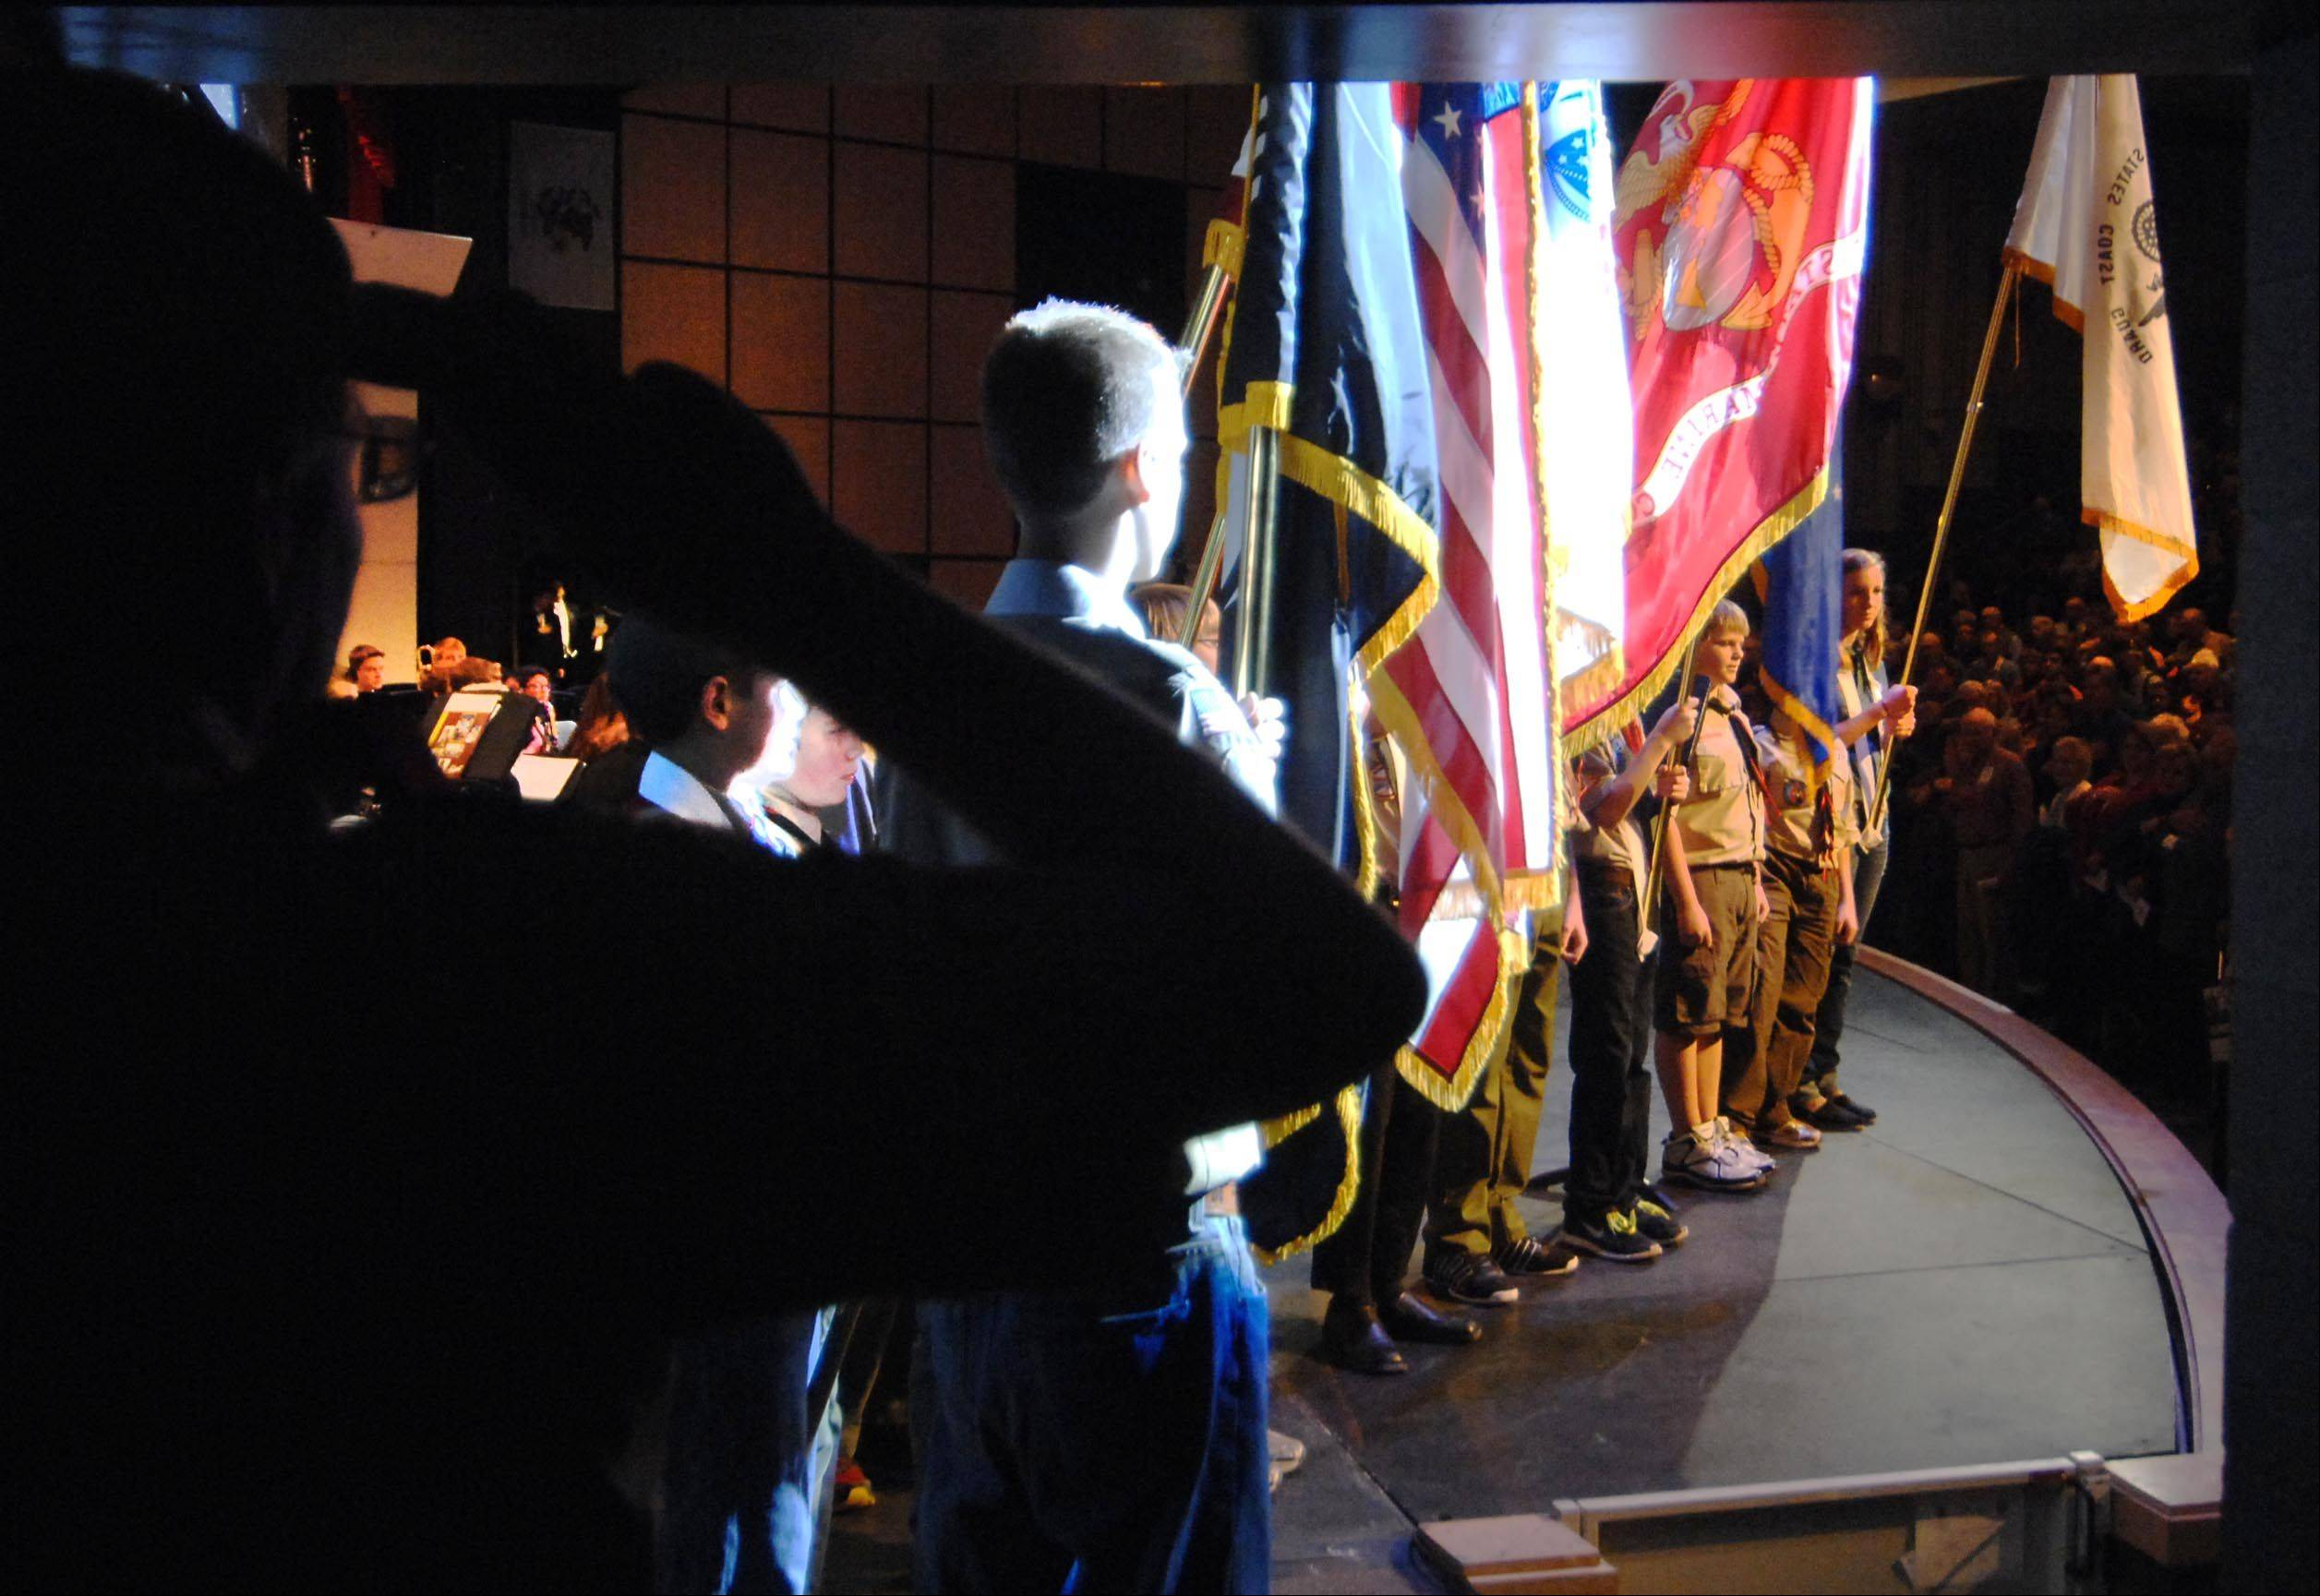 Scouts from St. Charles Girl Scout Troop #1036, Boy Scout Troo #56, and Elburn boy Scout Troop #7 stand at attention as they present the colors Sunday at the Sixth Annual Veterans Celebration Concert for Veterans Day at St. Charles North High School.